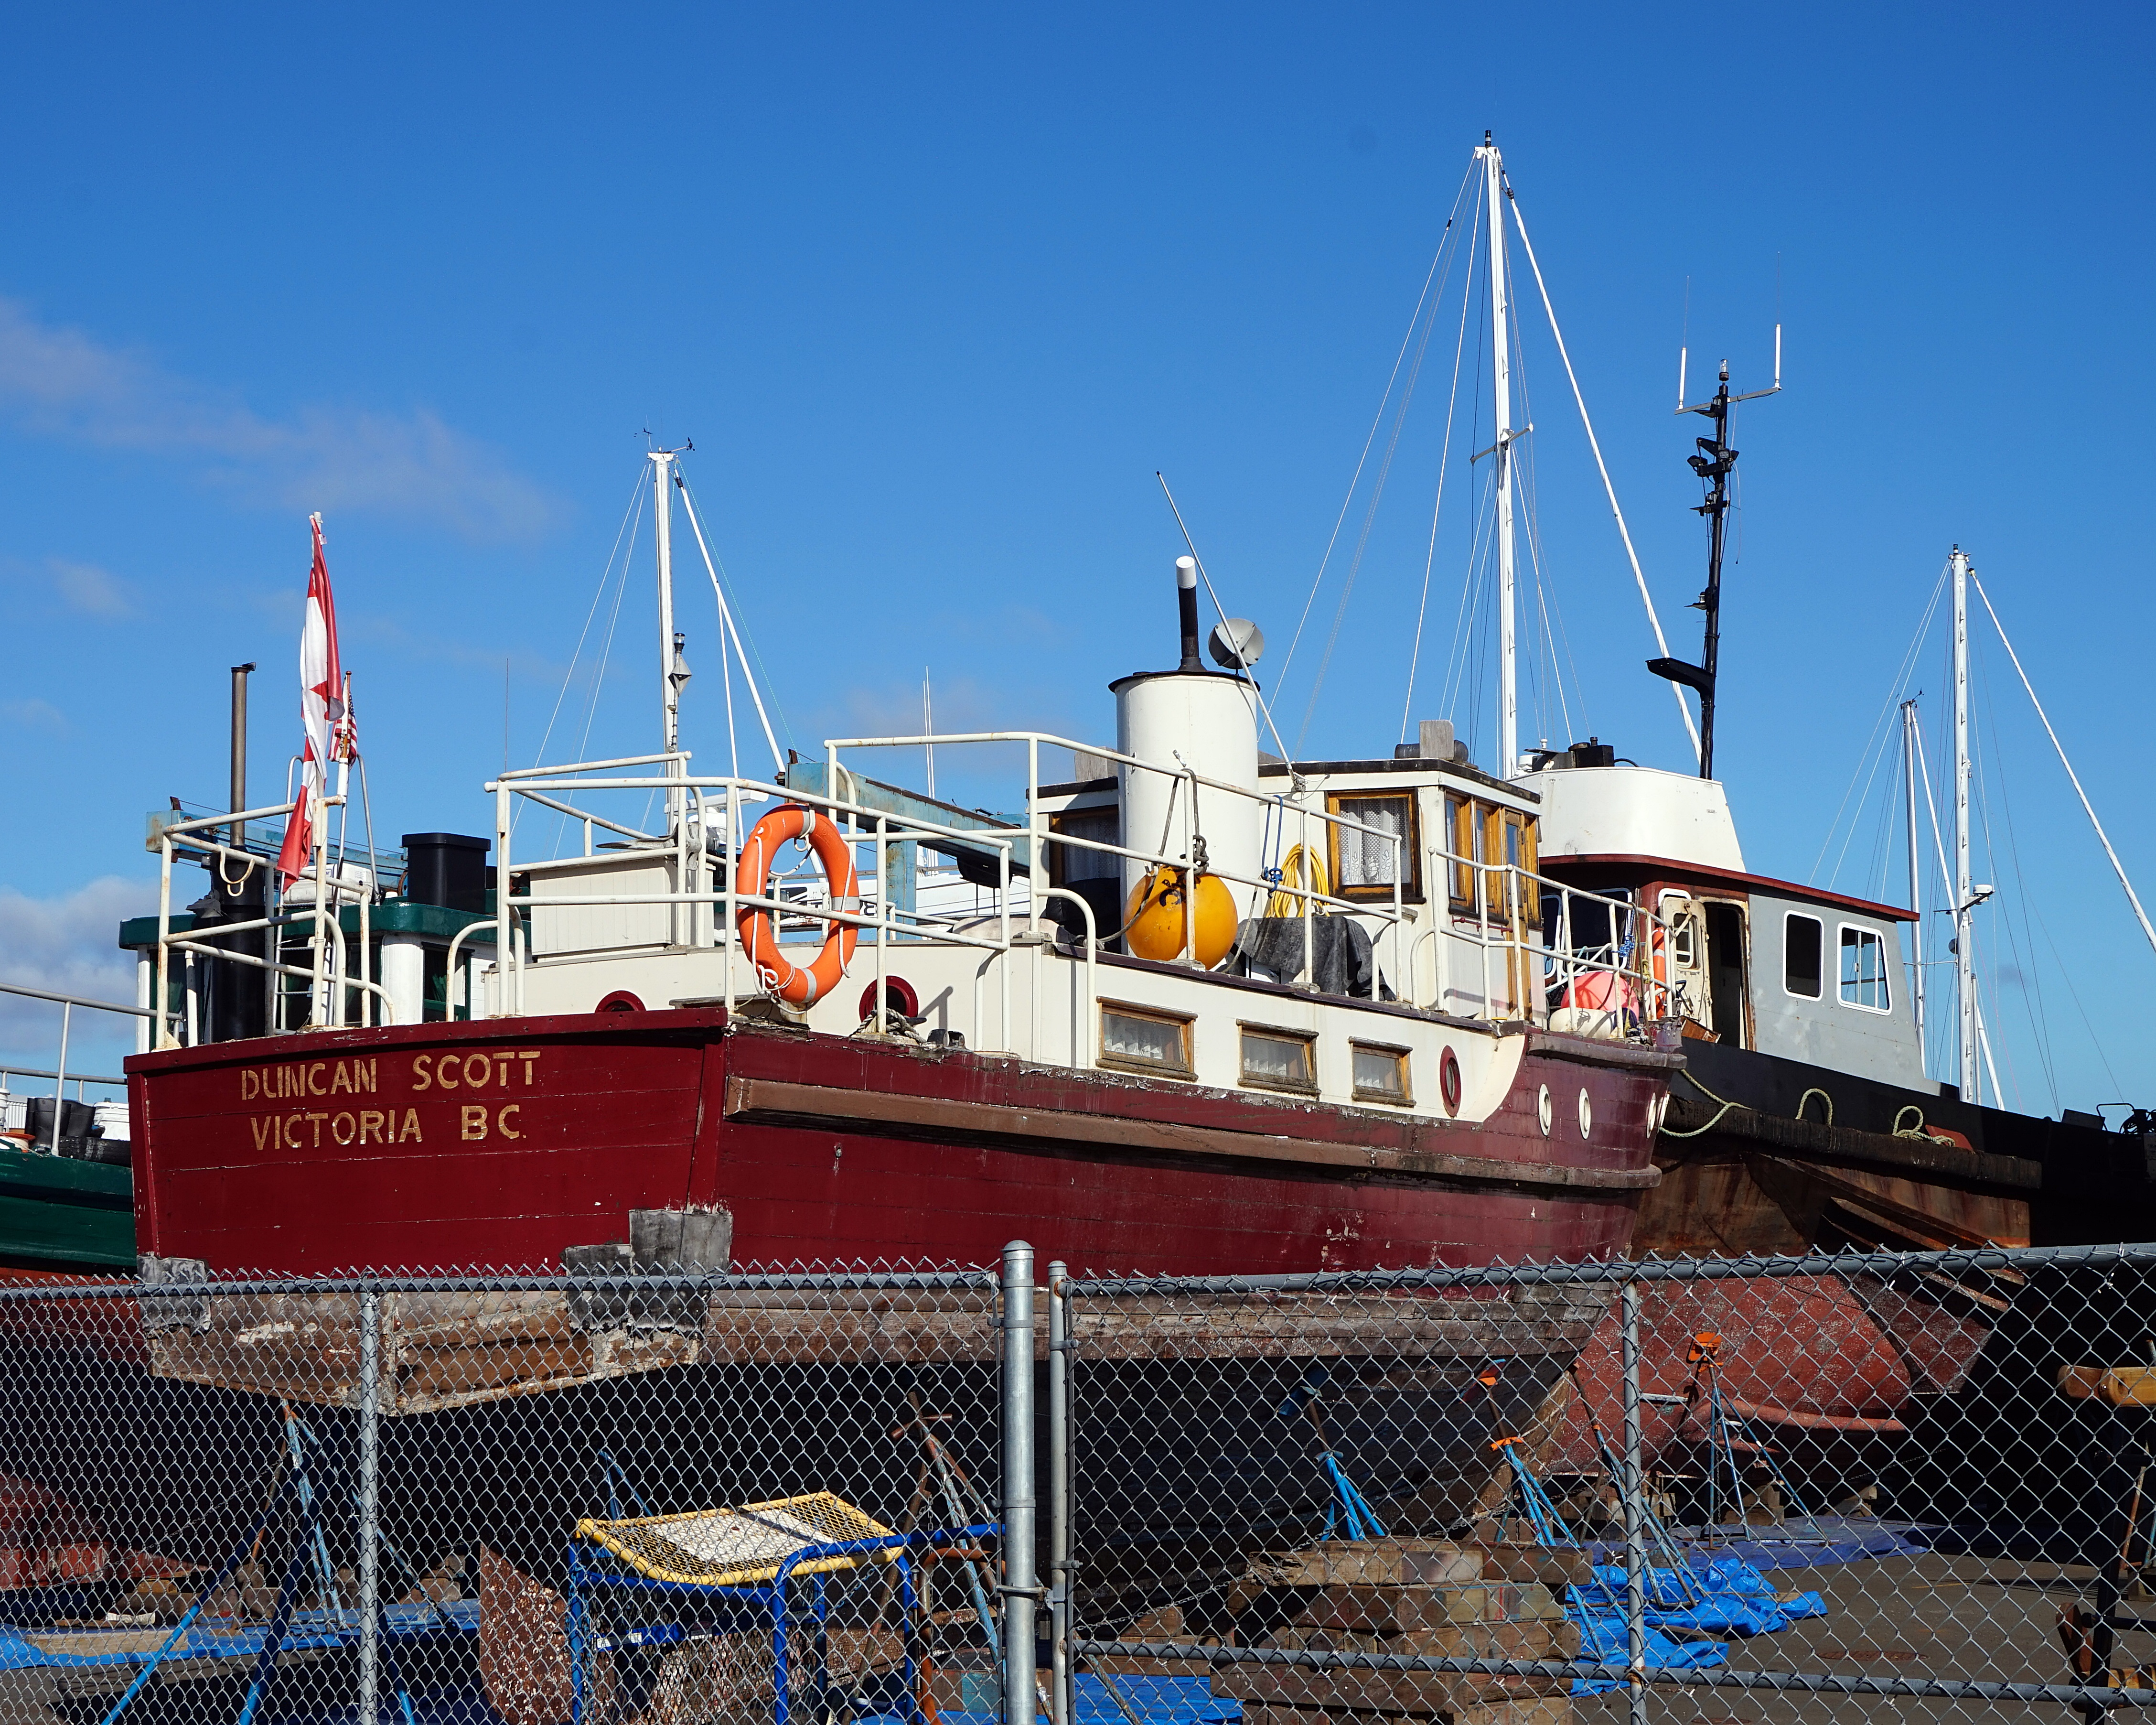 File:campbell River Dry Dock, Vancouver Island, British Columbia, Canadag